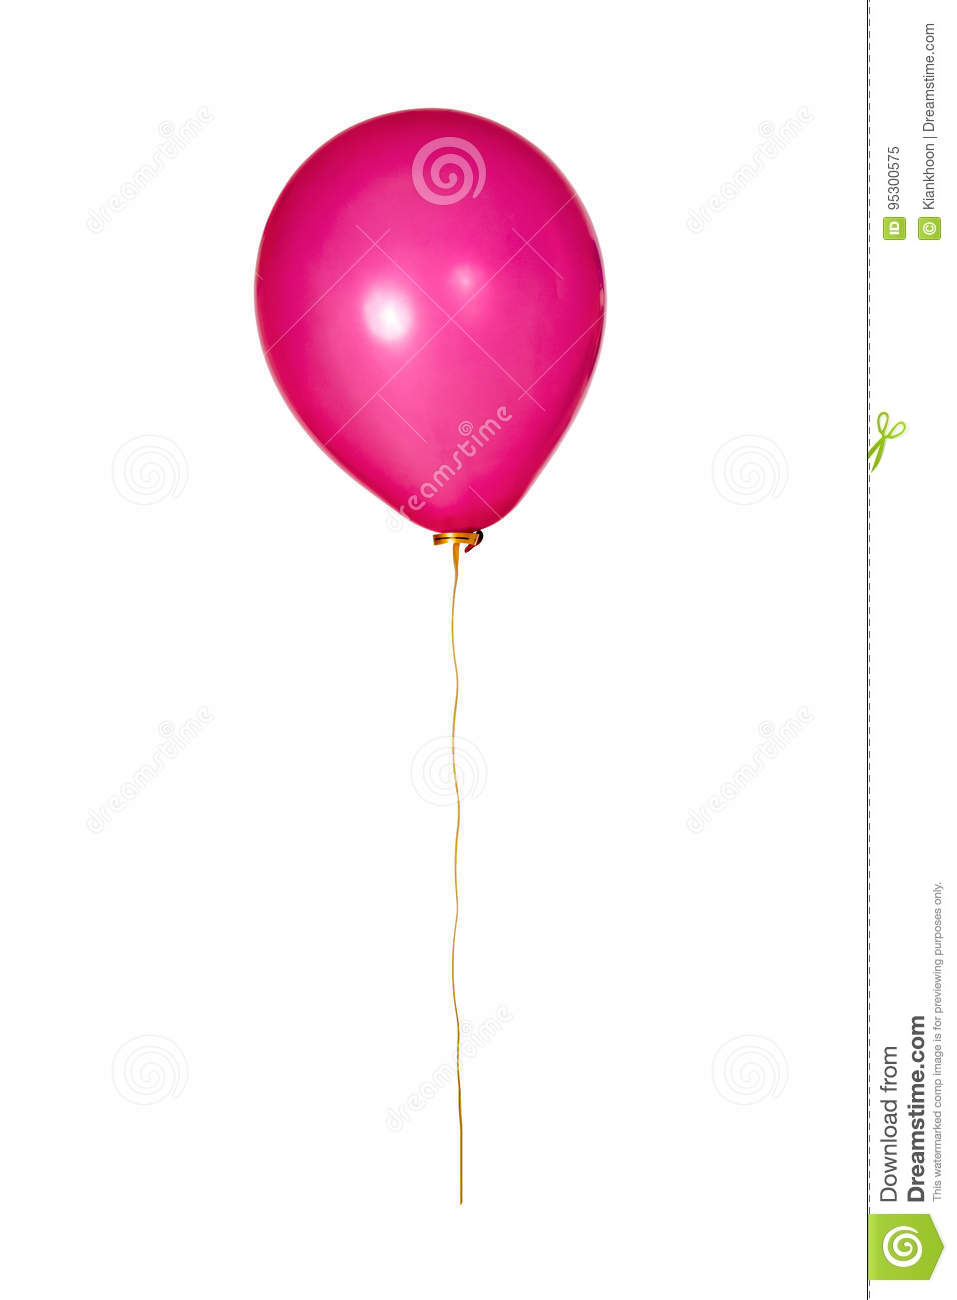 Red Balloon with yellow ribbon